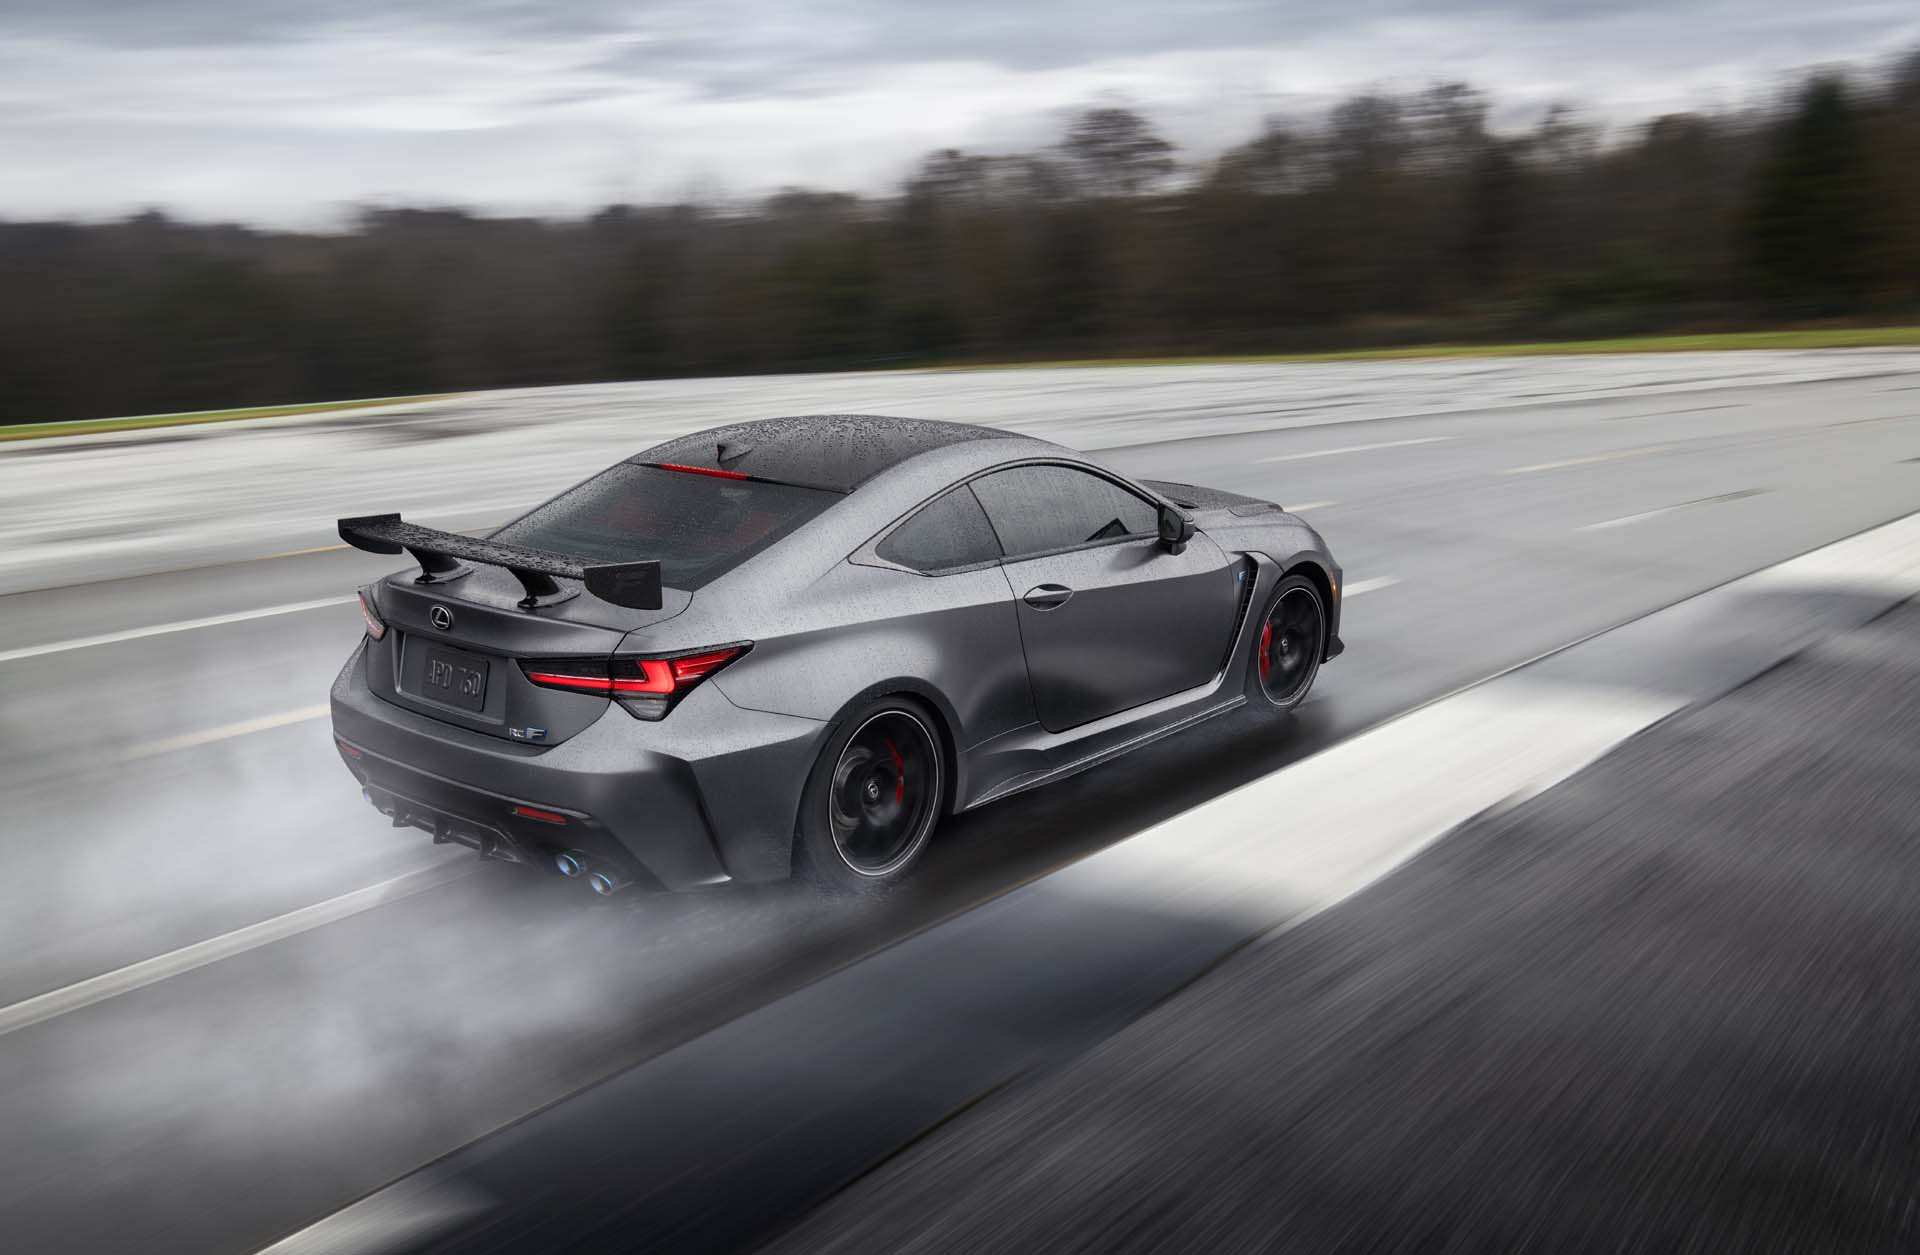 47 The 2020 Lexus Rc F Track Edition Specs Specs with 2020 Lexus Rc F Track Edition Specs